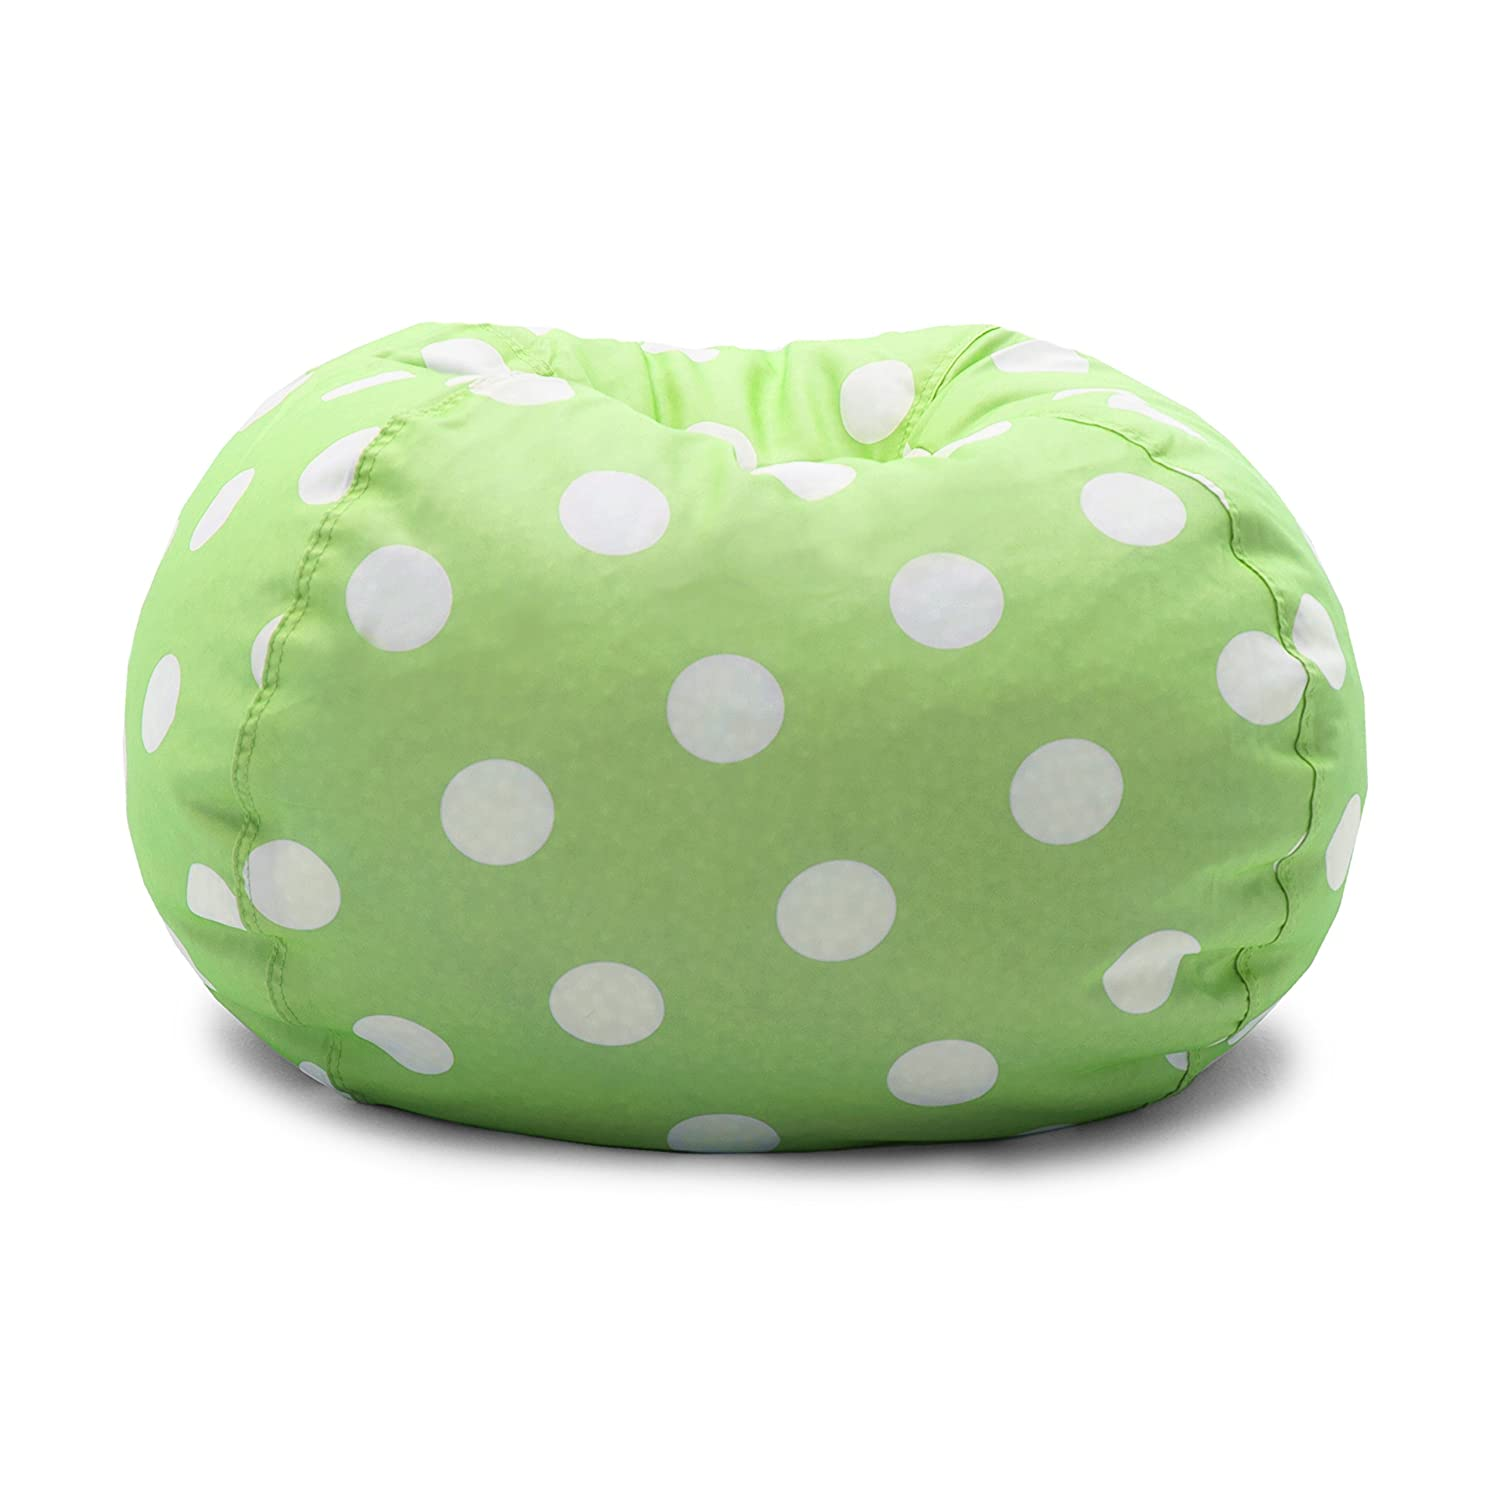 Big Joe Classic Bean Bag Chair, Candy Pink Polka Dot 0630251